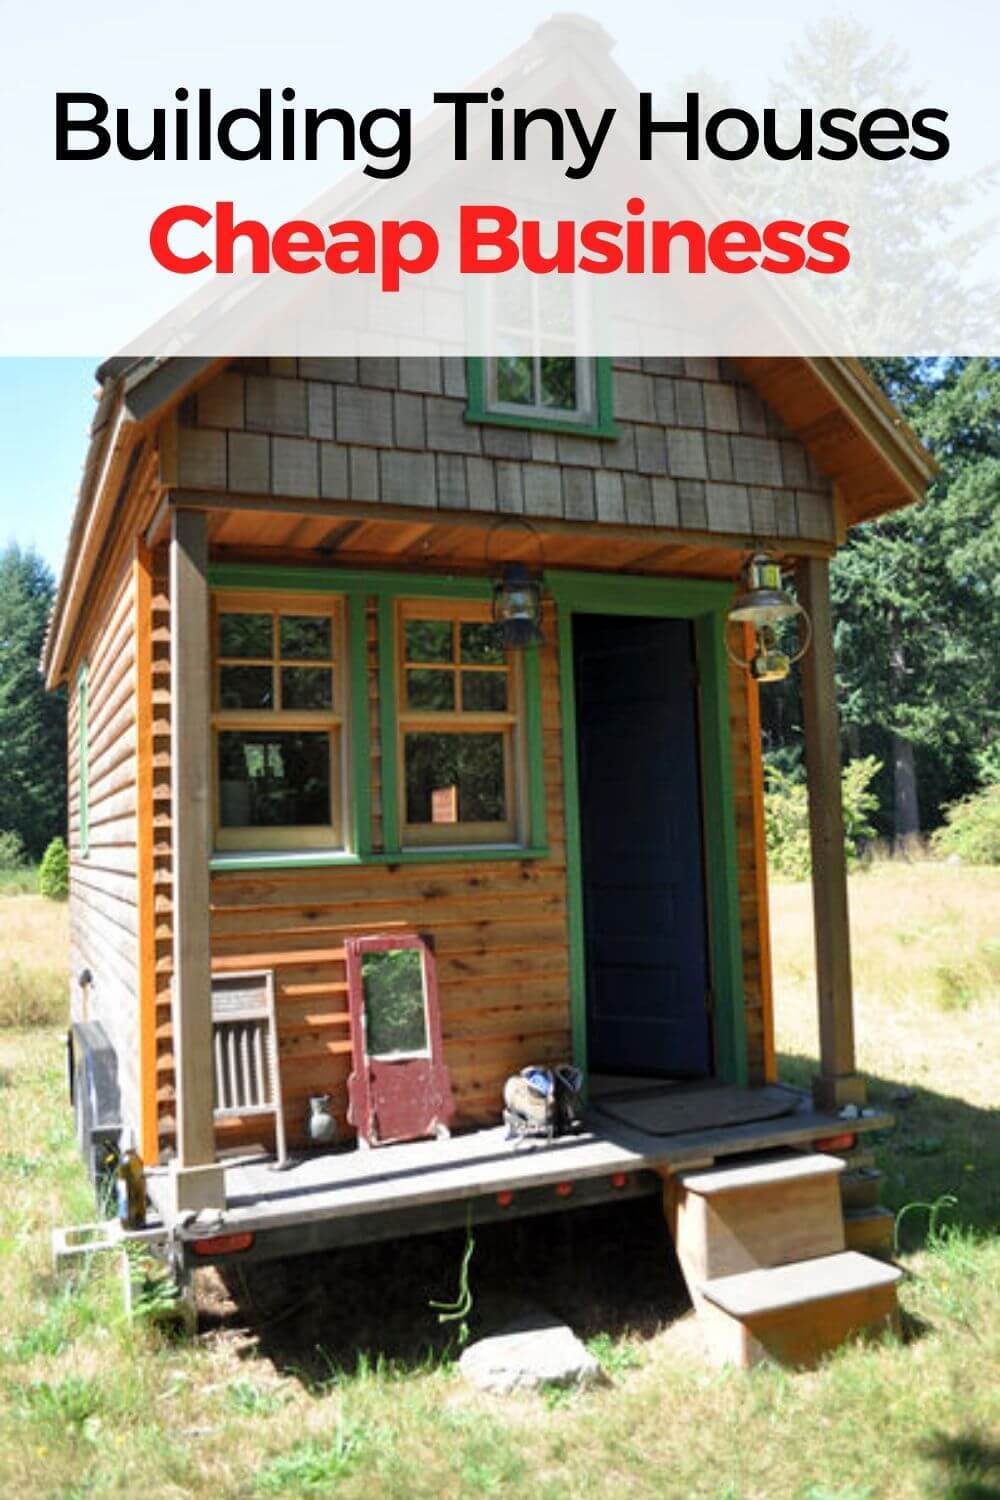 Building Tiny Houses cheap business